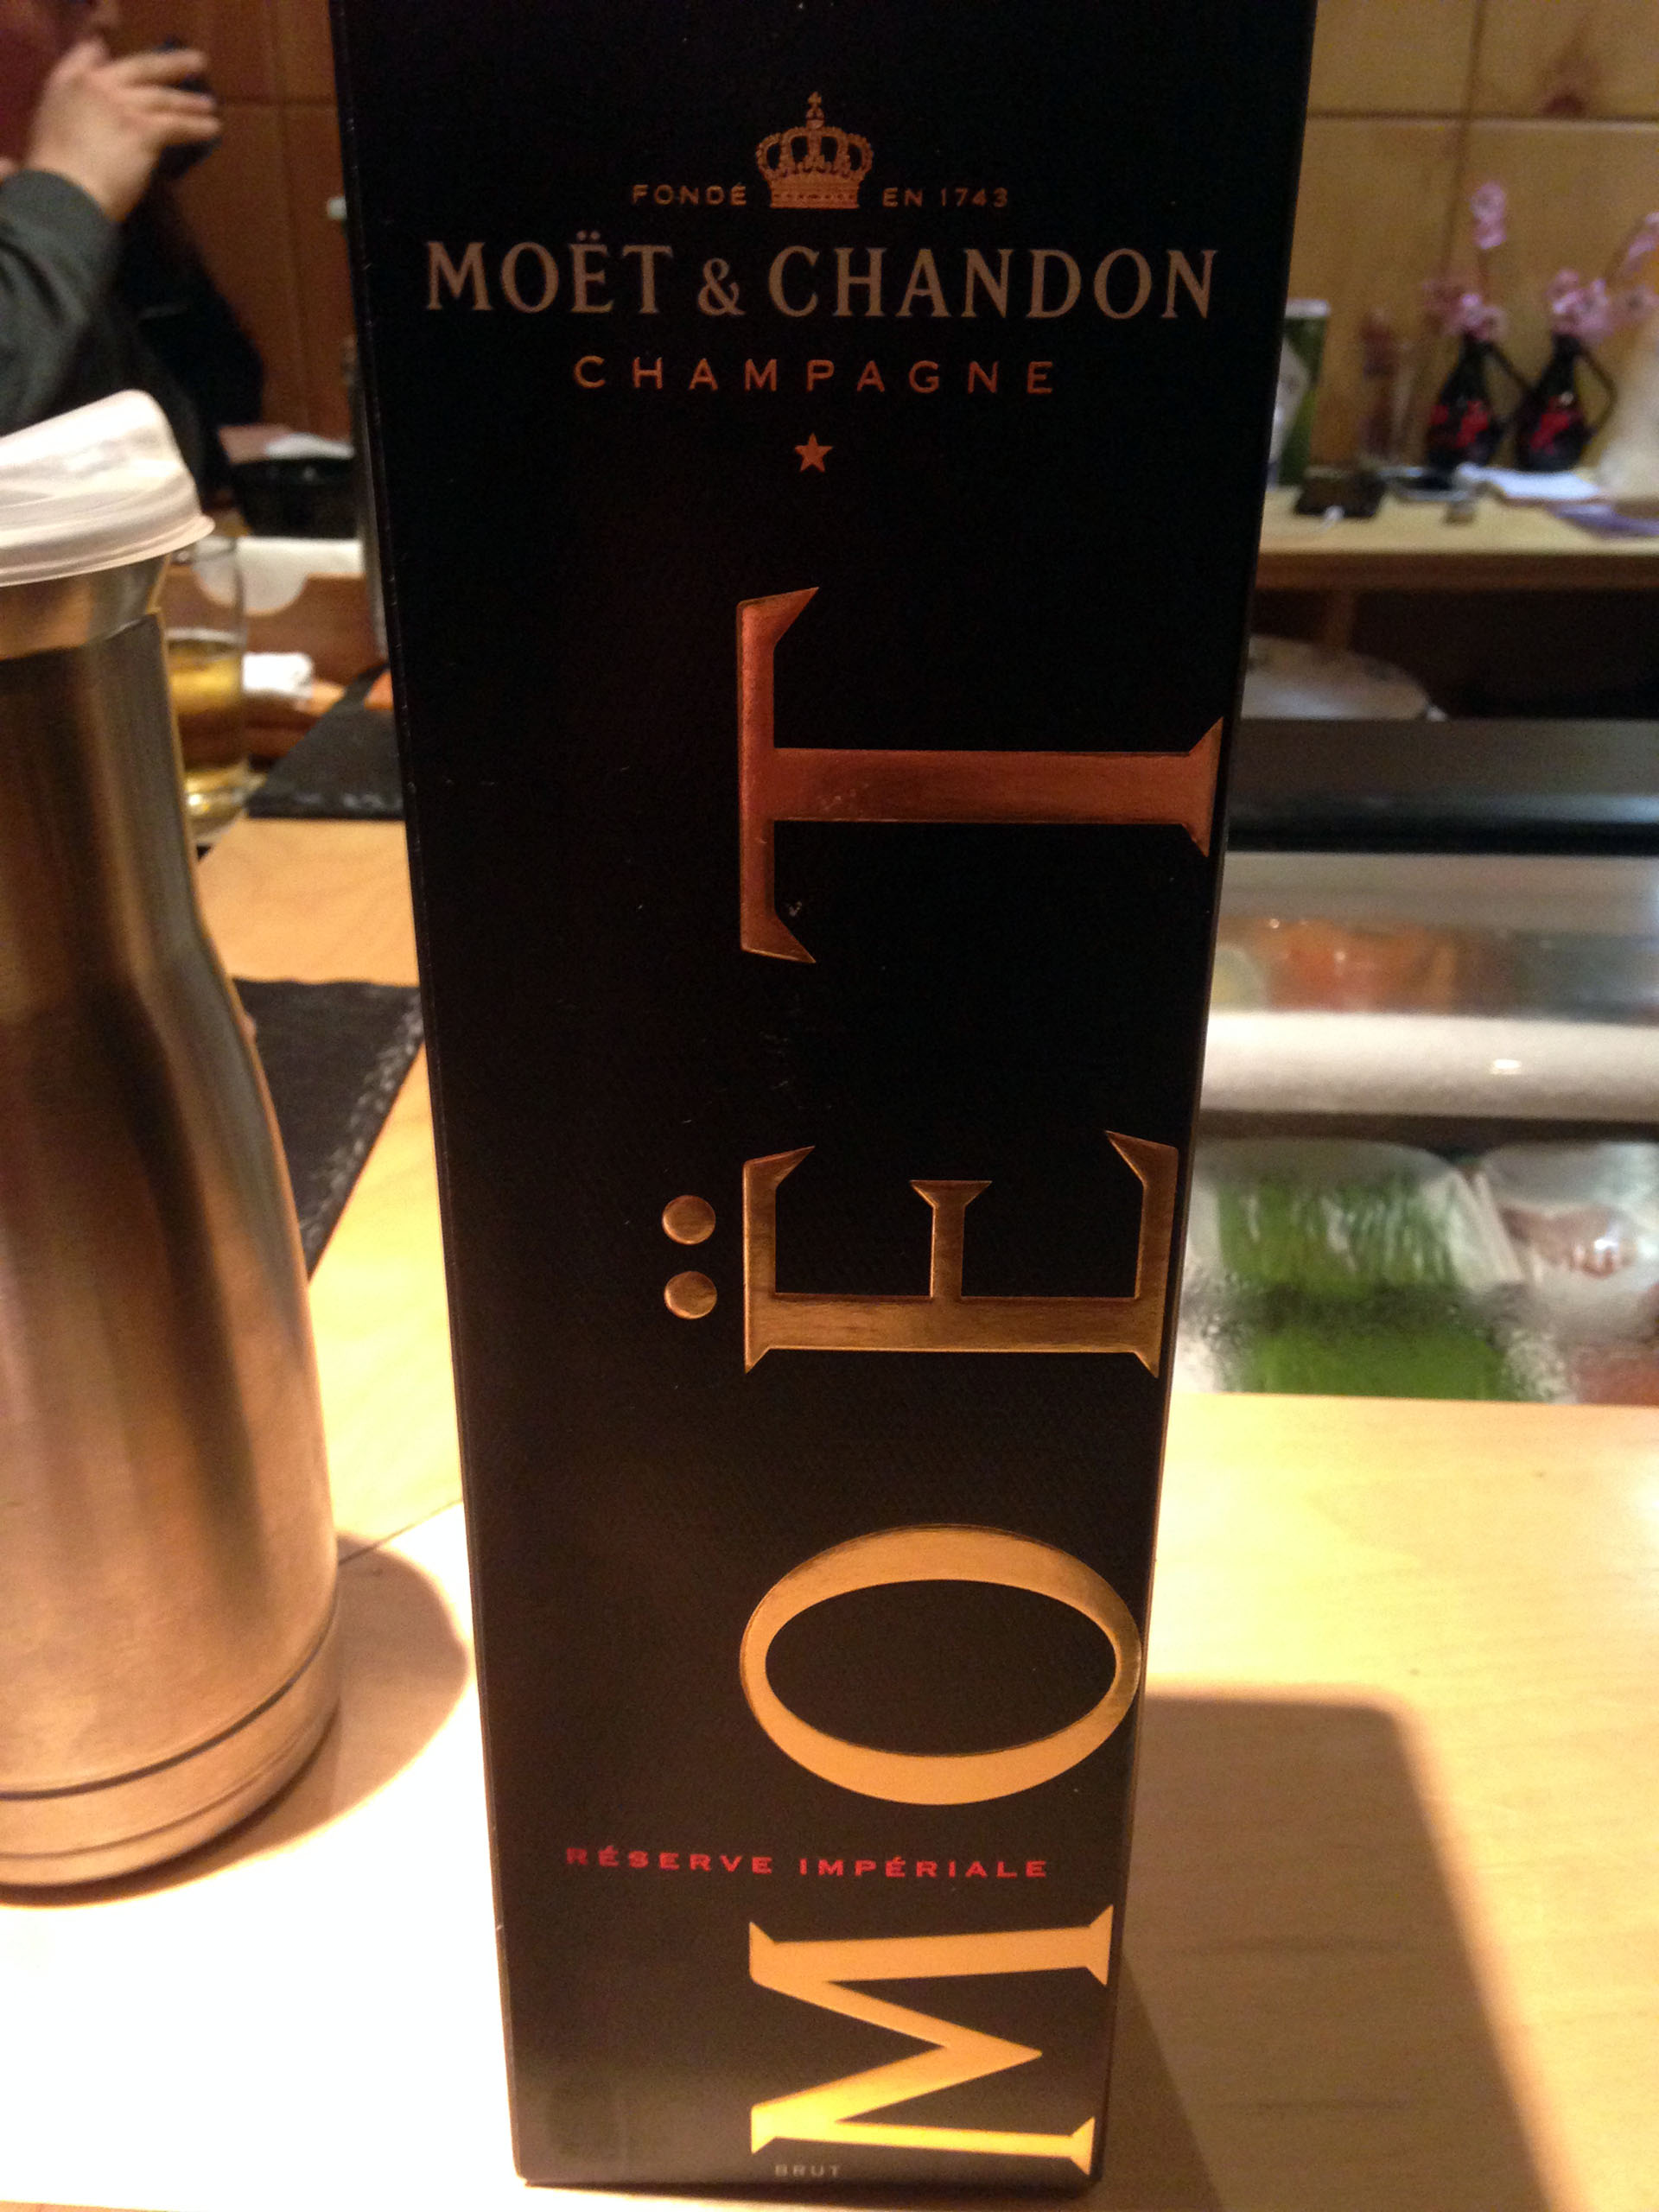 Moet & Chandon Reserve Imperial